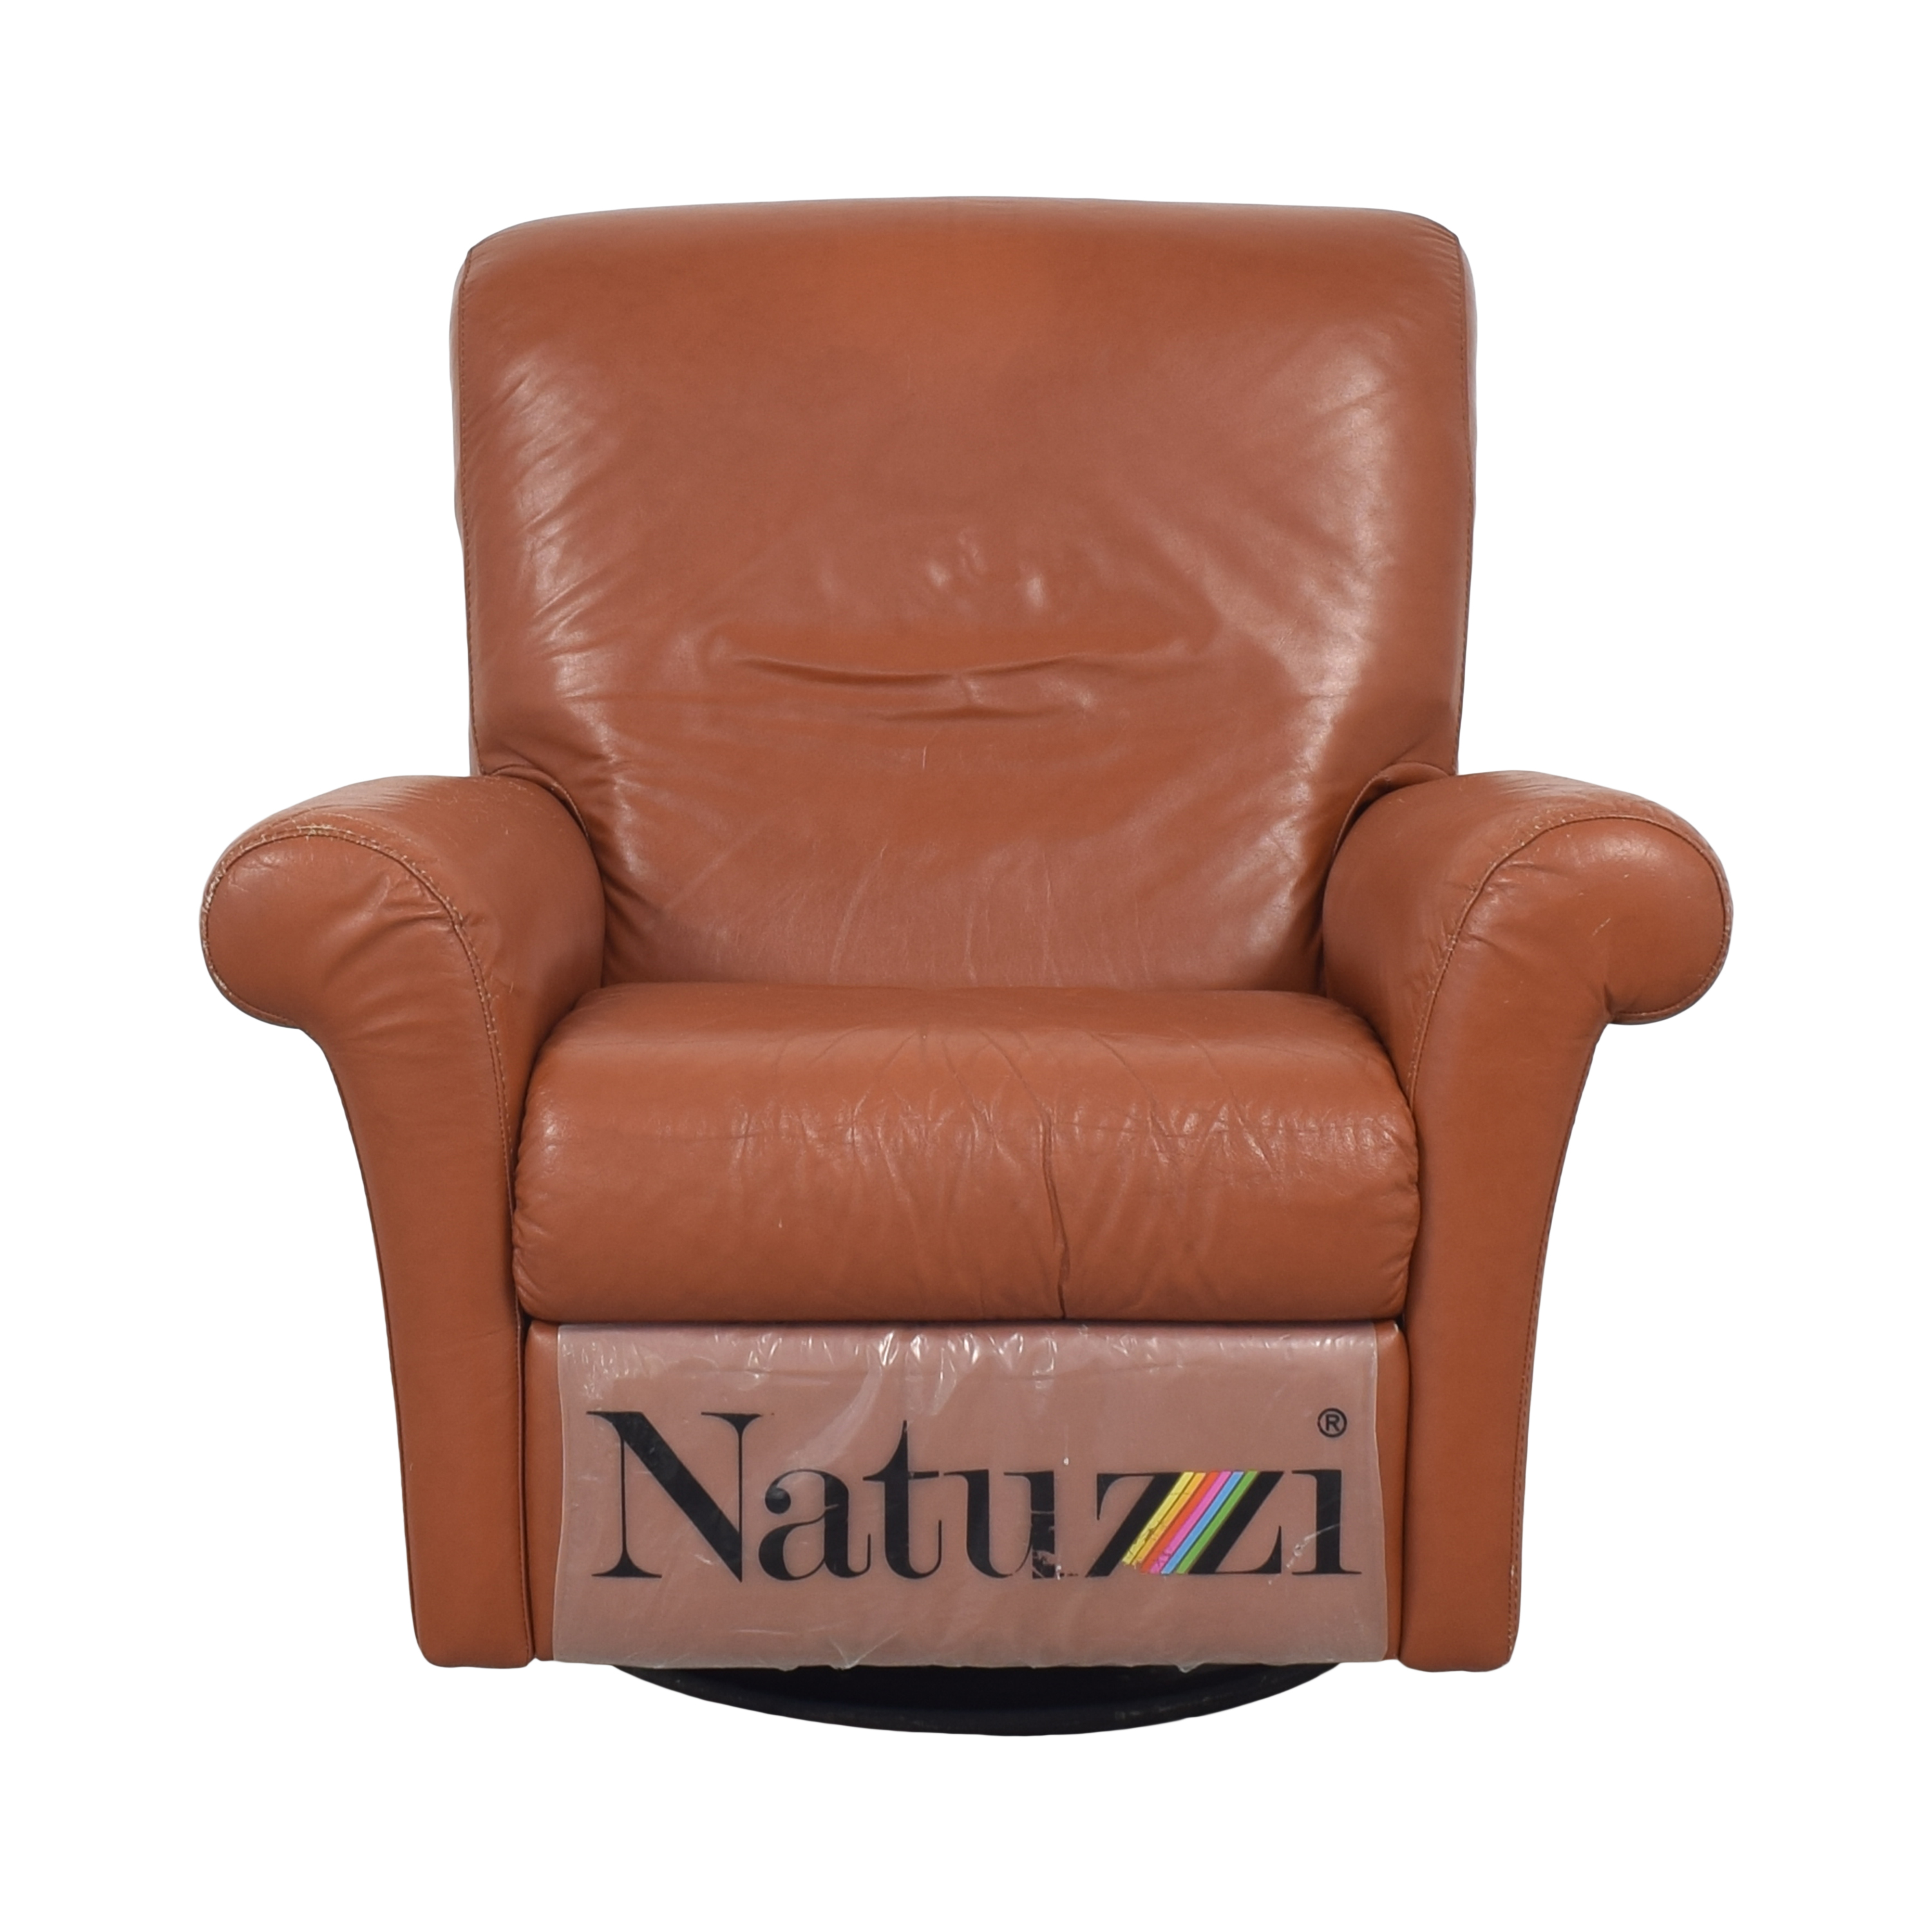 Natuzzi Natuzzi Swivel Recliner second hand